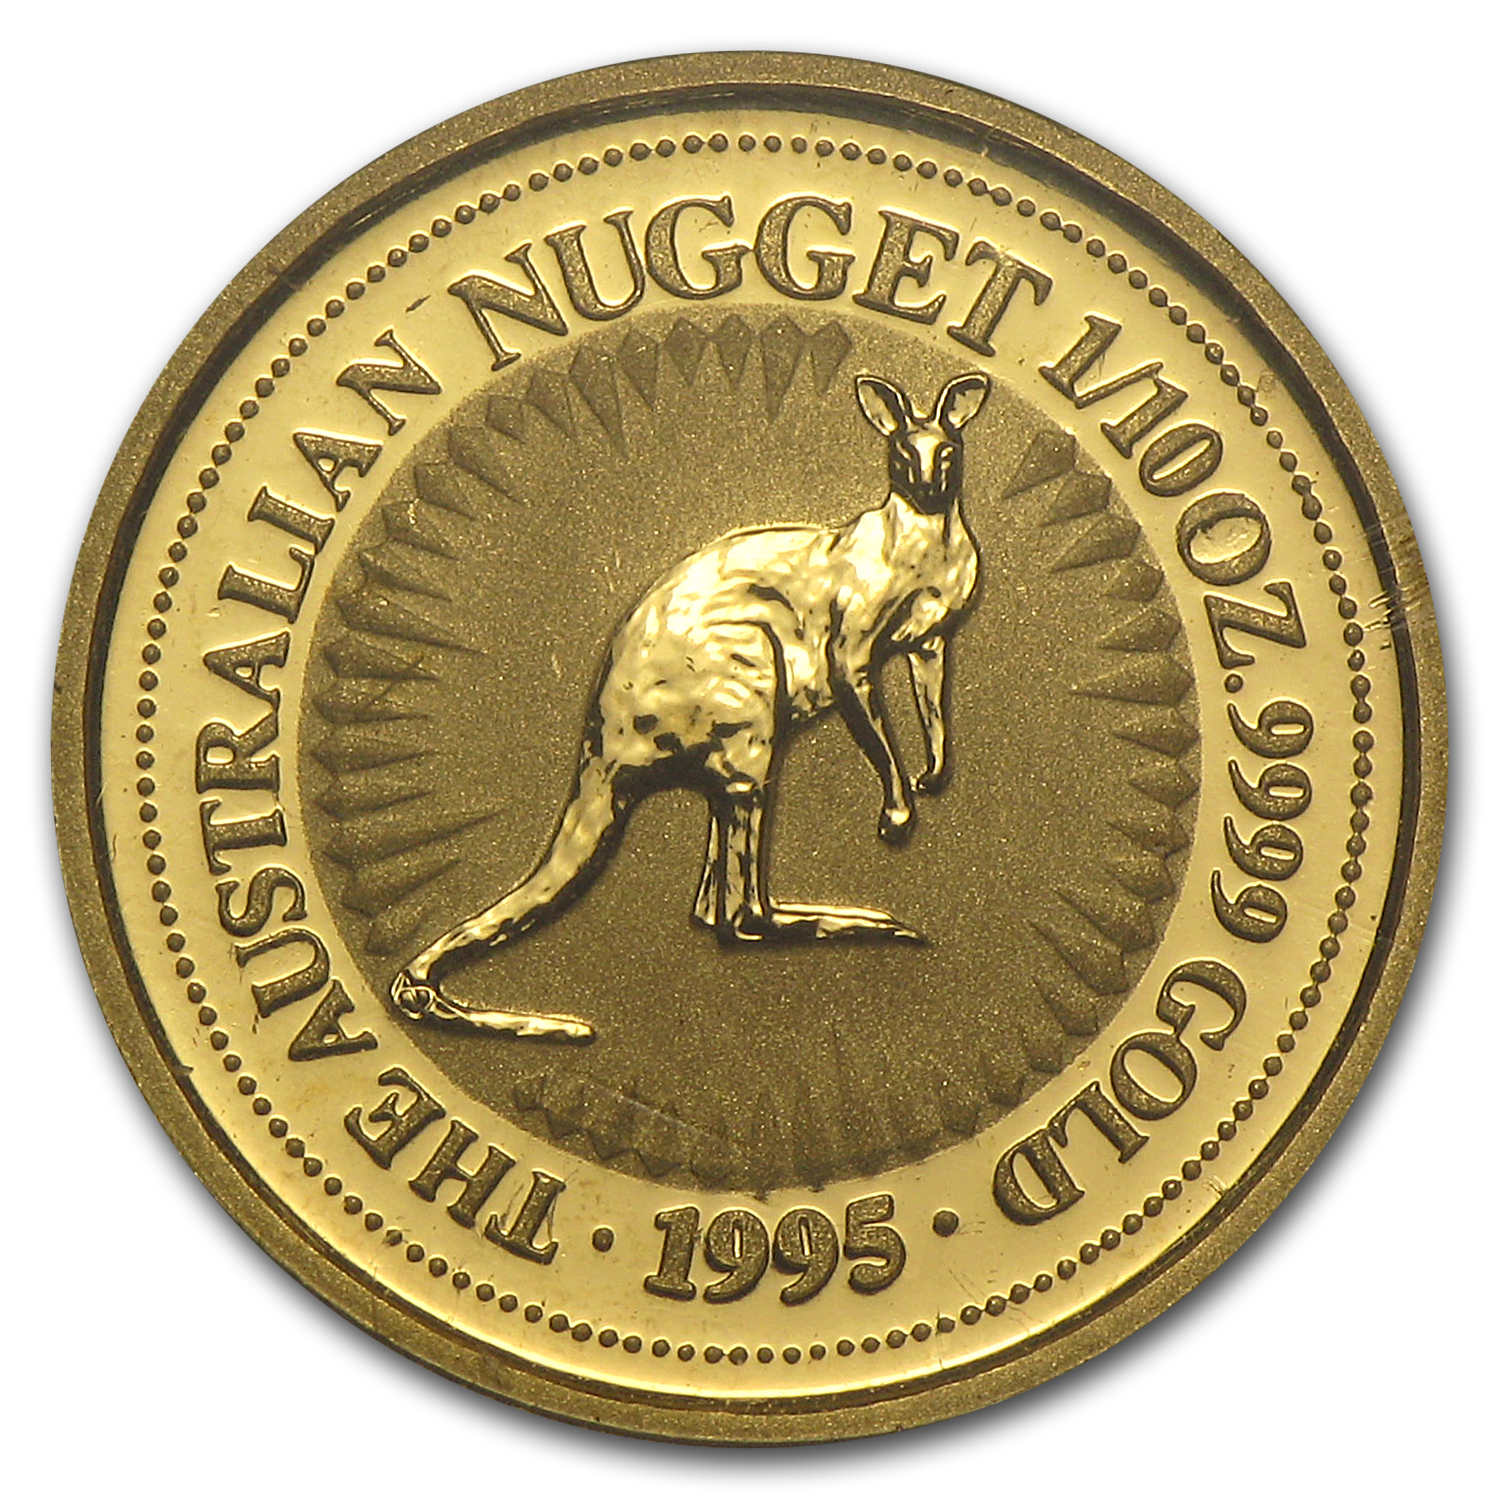 1995 Australia 1/10 oz Gold Nugget